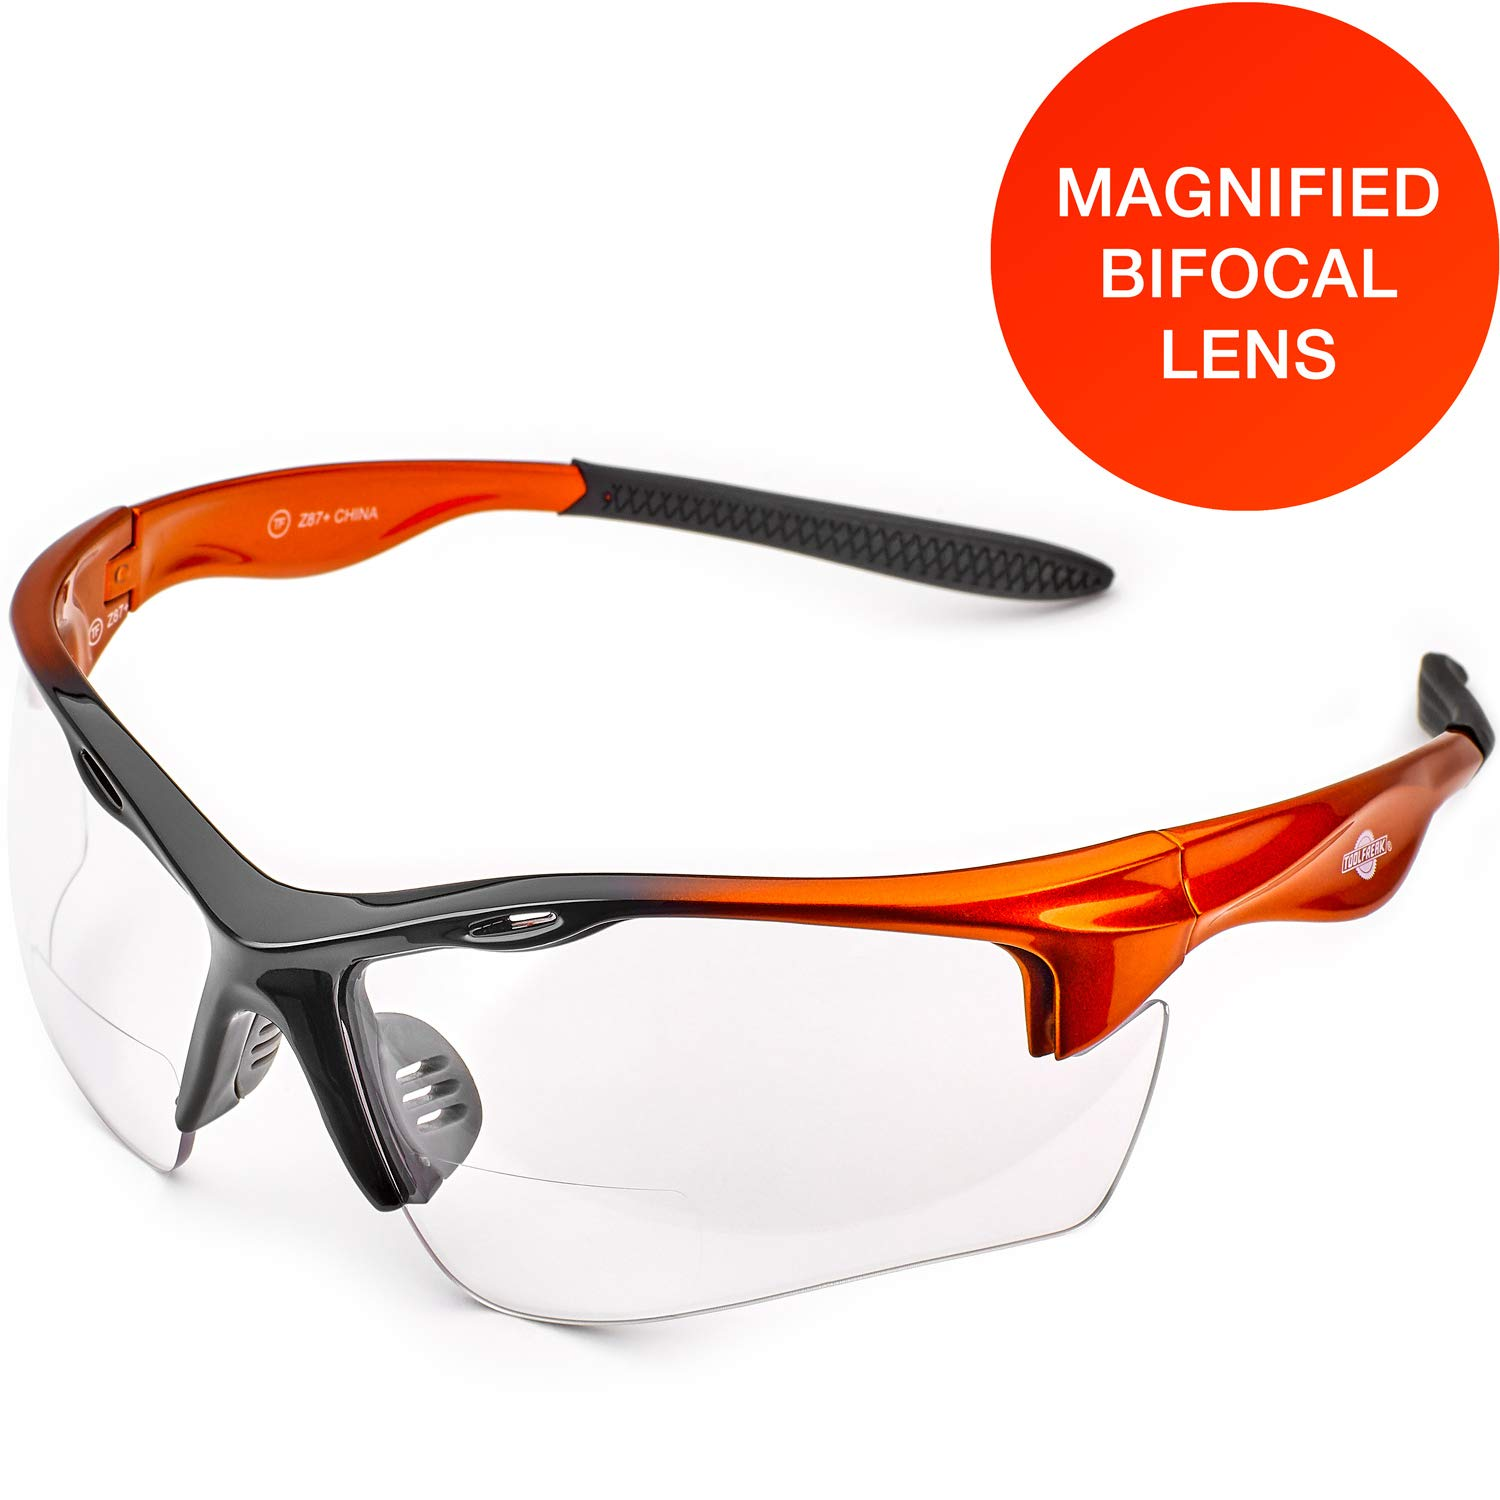 ToolFreak Rebel Magnified Bifocal Reading Safety Glasses for Work and Sport, Wraparound Lenses with Impact and U6 UV Protection Rated to ANSI z87+, Case, Neck Cord, Pouch (+2.0 Diopter Clear Lens)